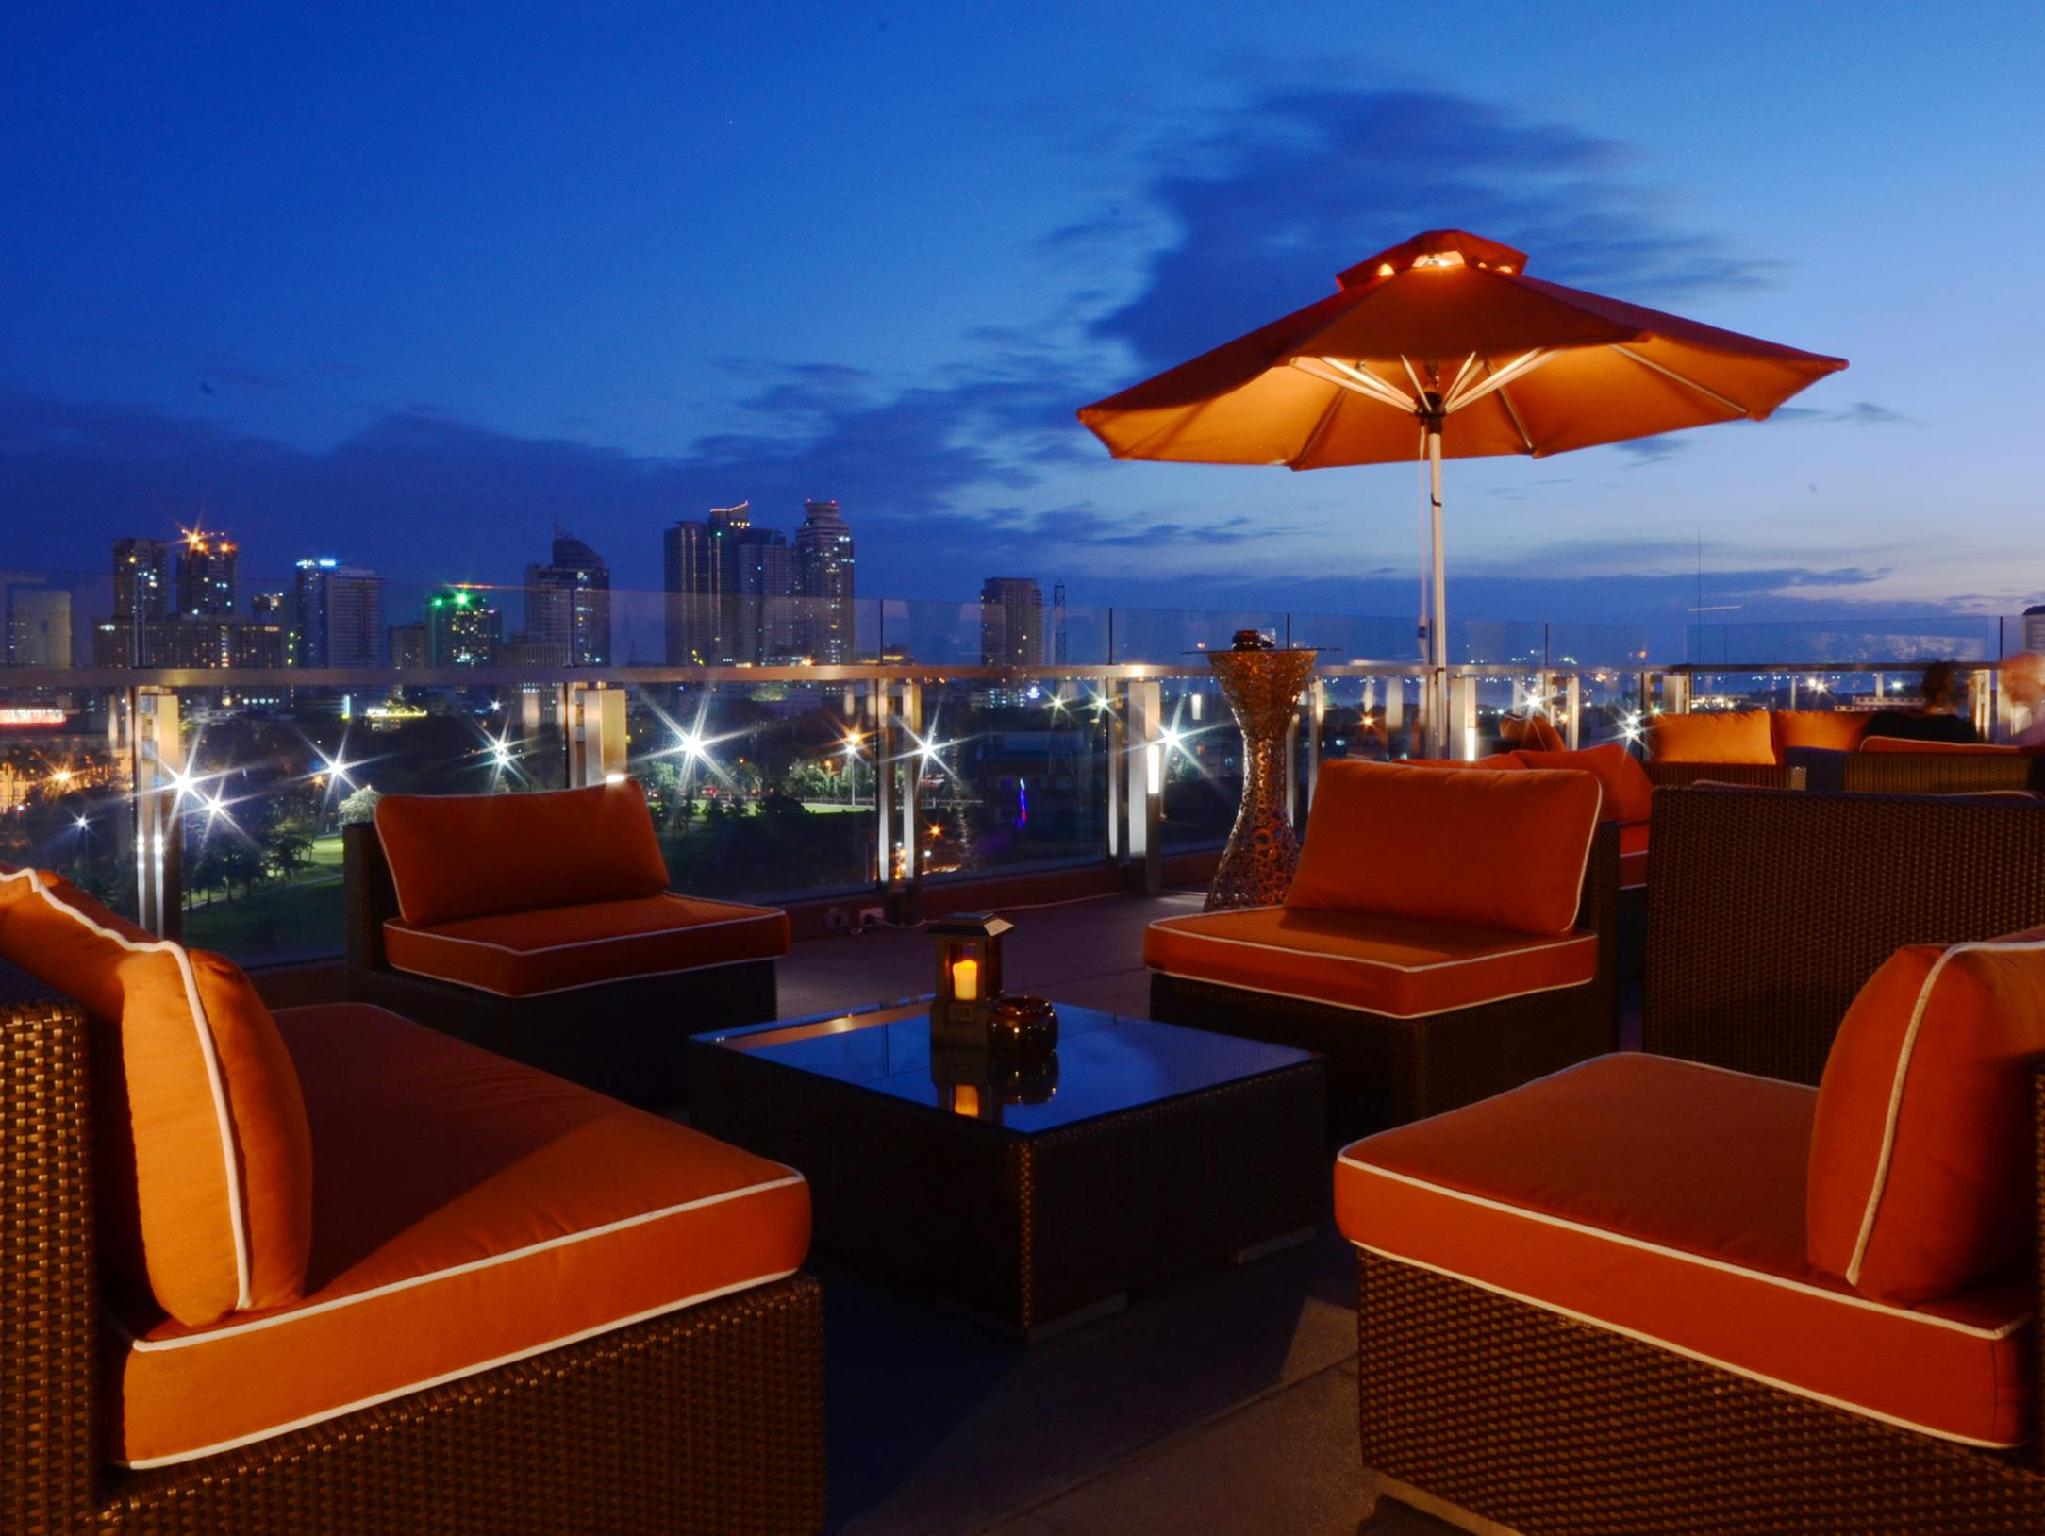 795 Verified Hotel Reviews of The Bayleaf ... - Booking.com